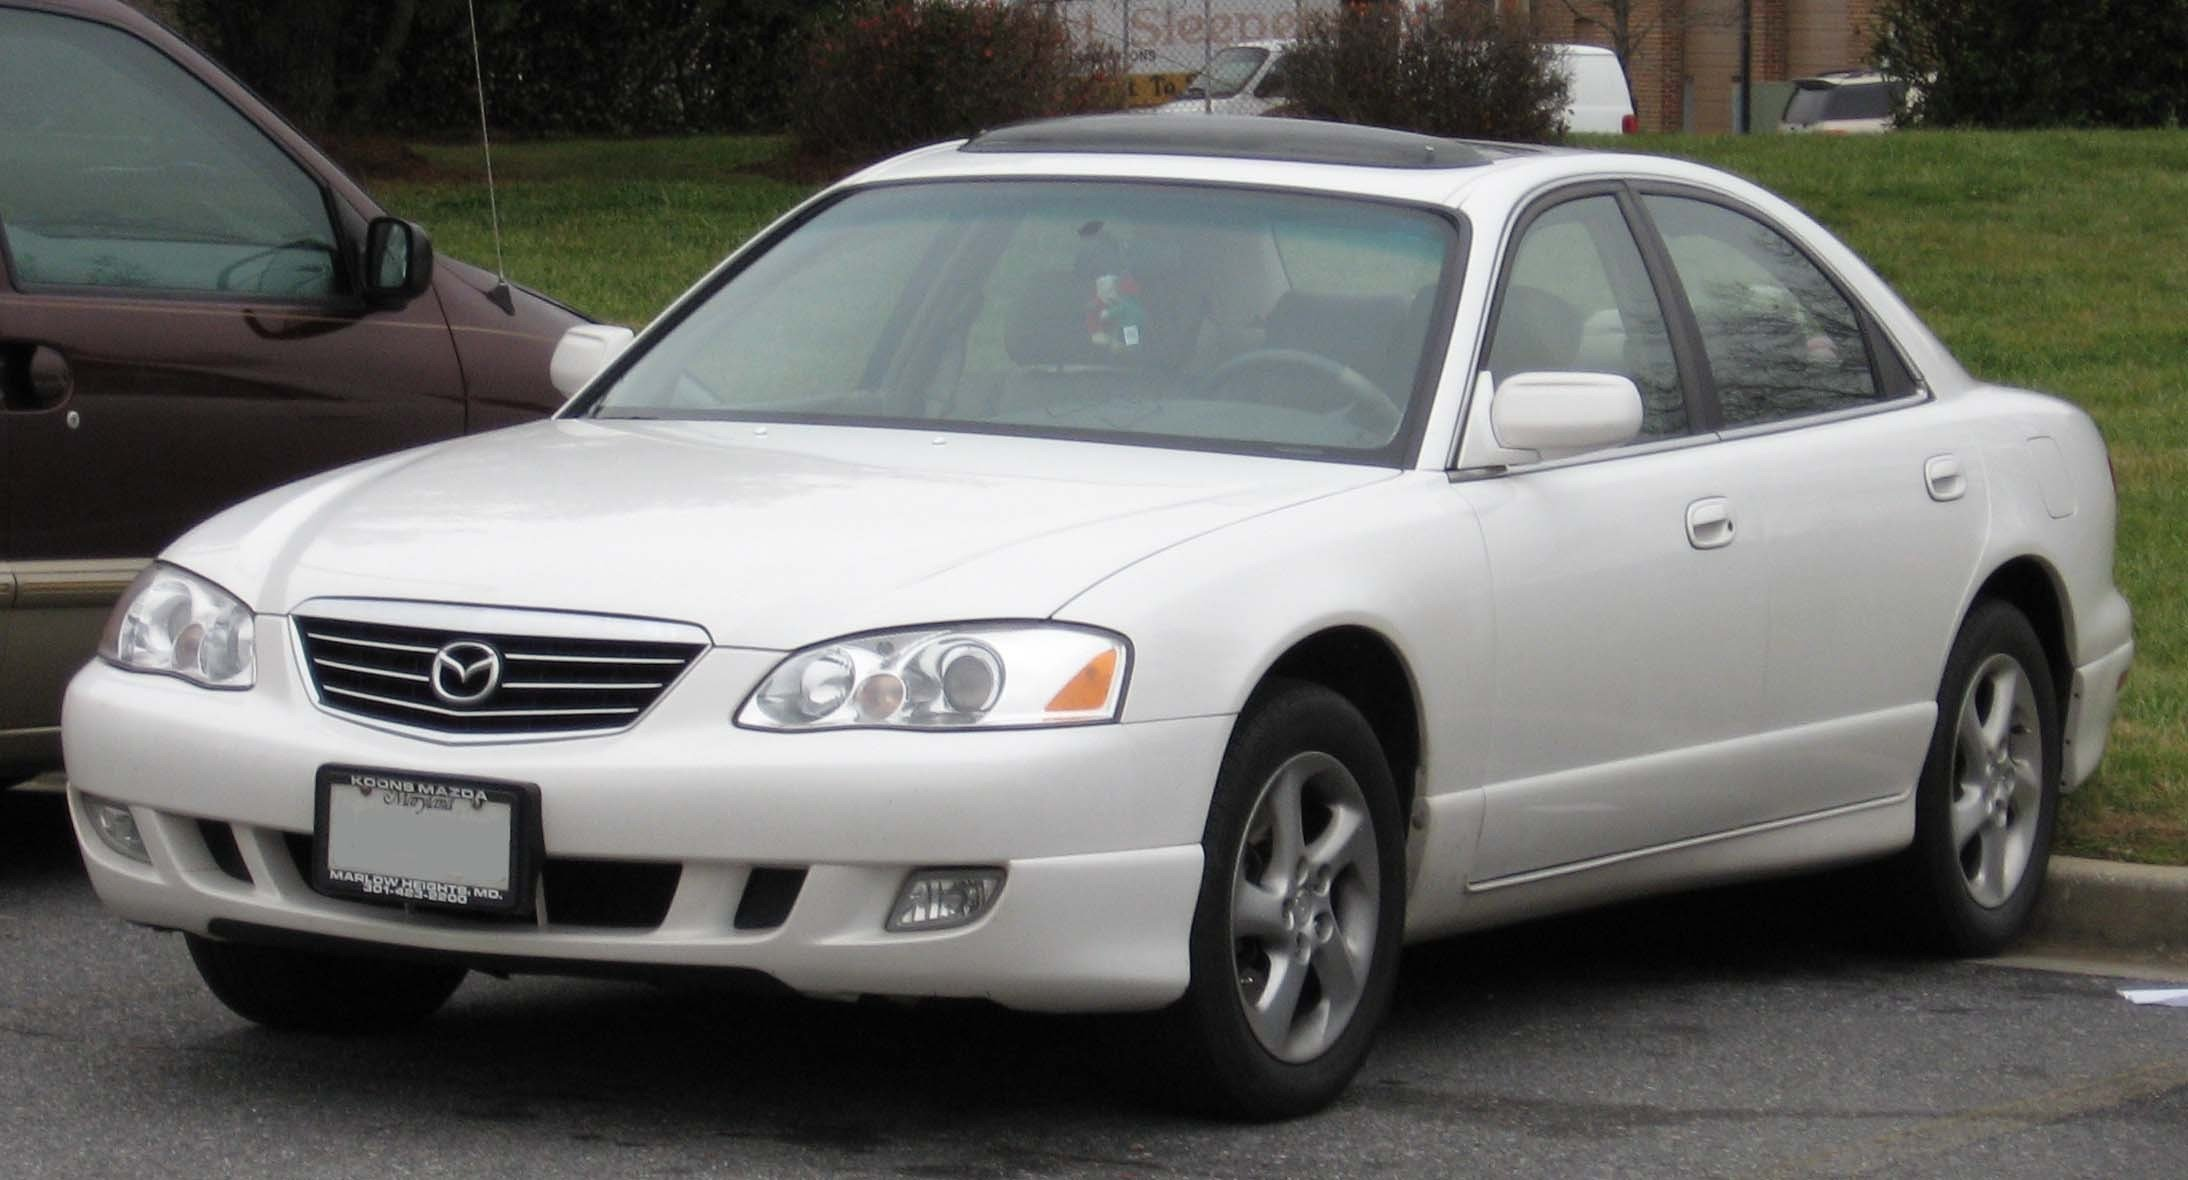 Latest Mazda Cars Gallery Mazda Millenia Photos Gallery Free Download